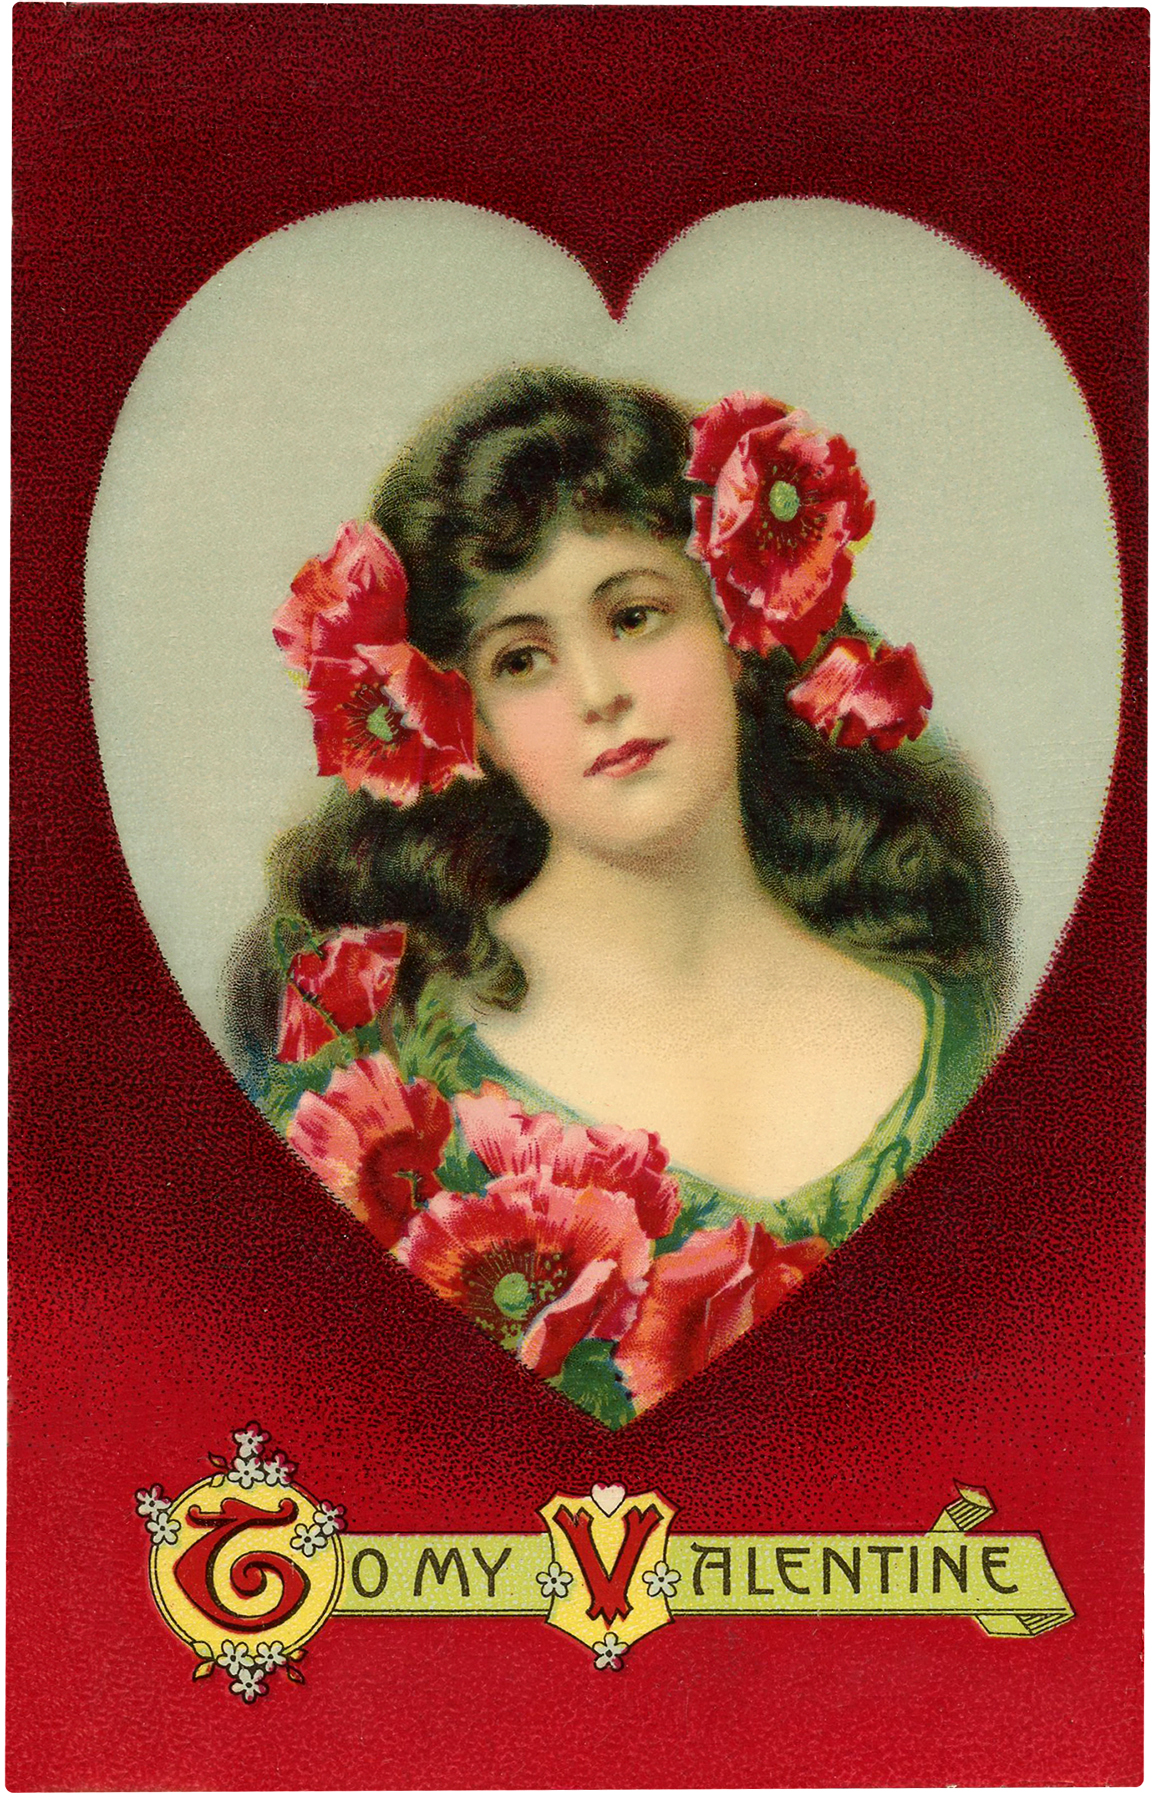 Vintage Valentine Beauty